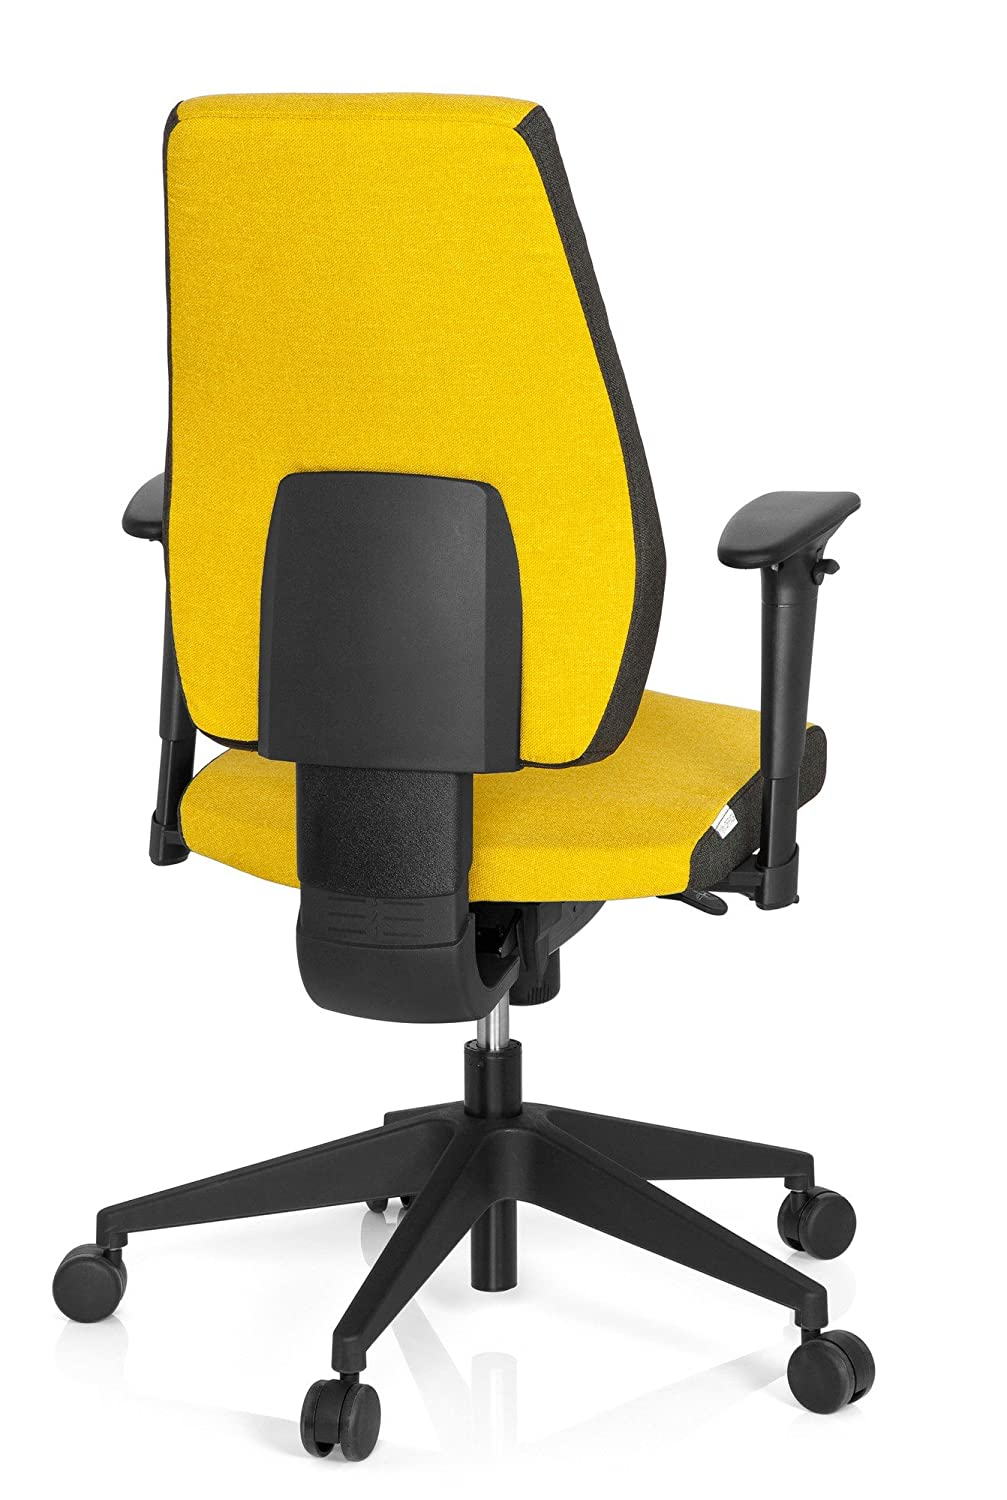 tejido de color marengo y curry Silla giratoria de oficina hjh OFFICE 608820 PRO-TEC 500